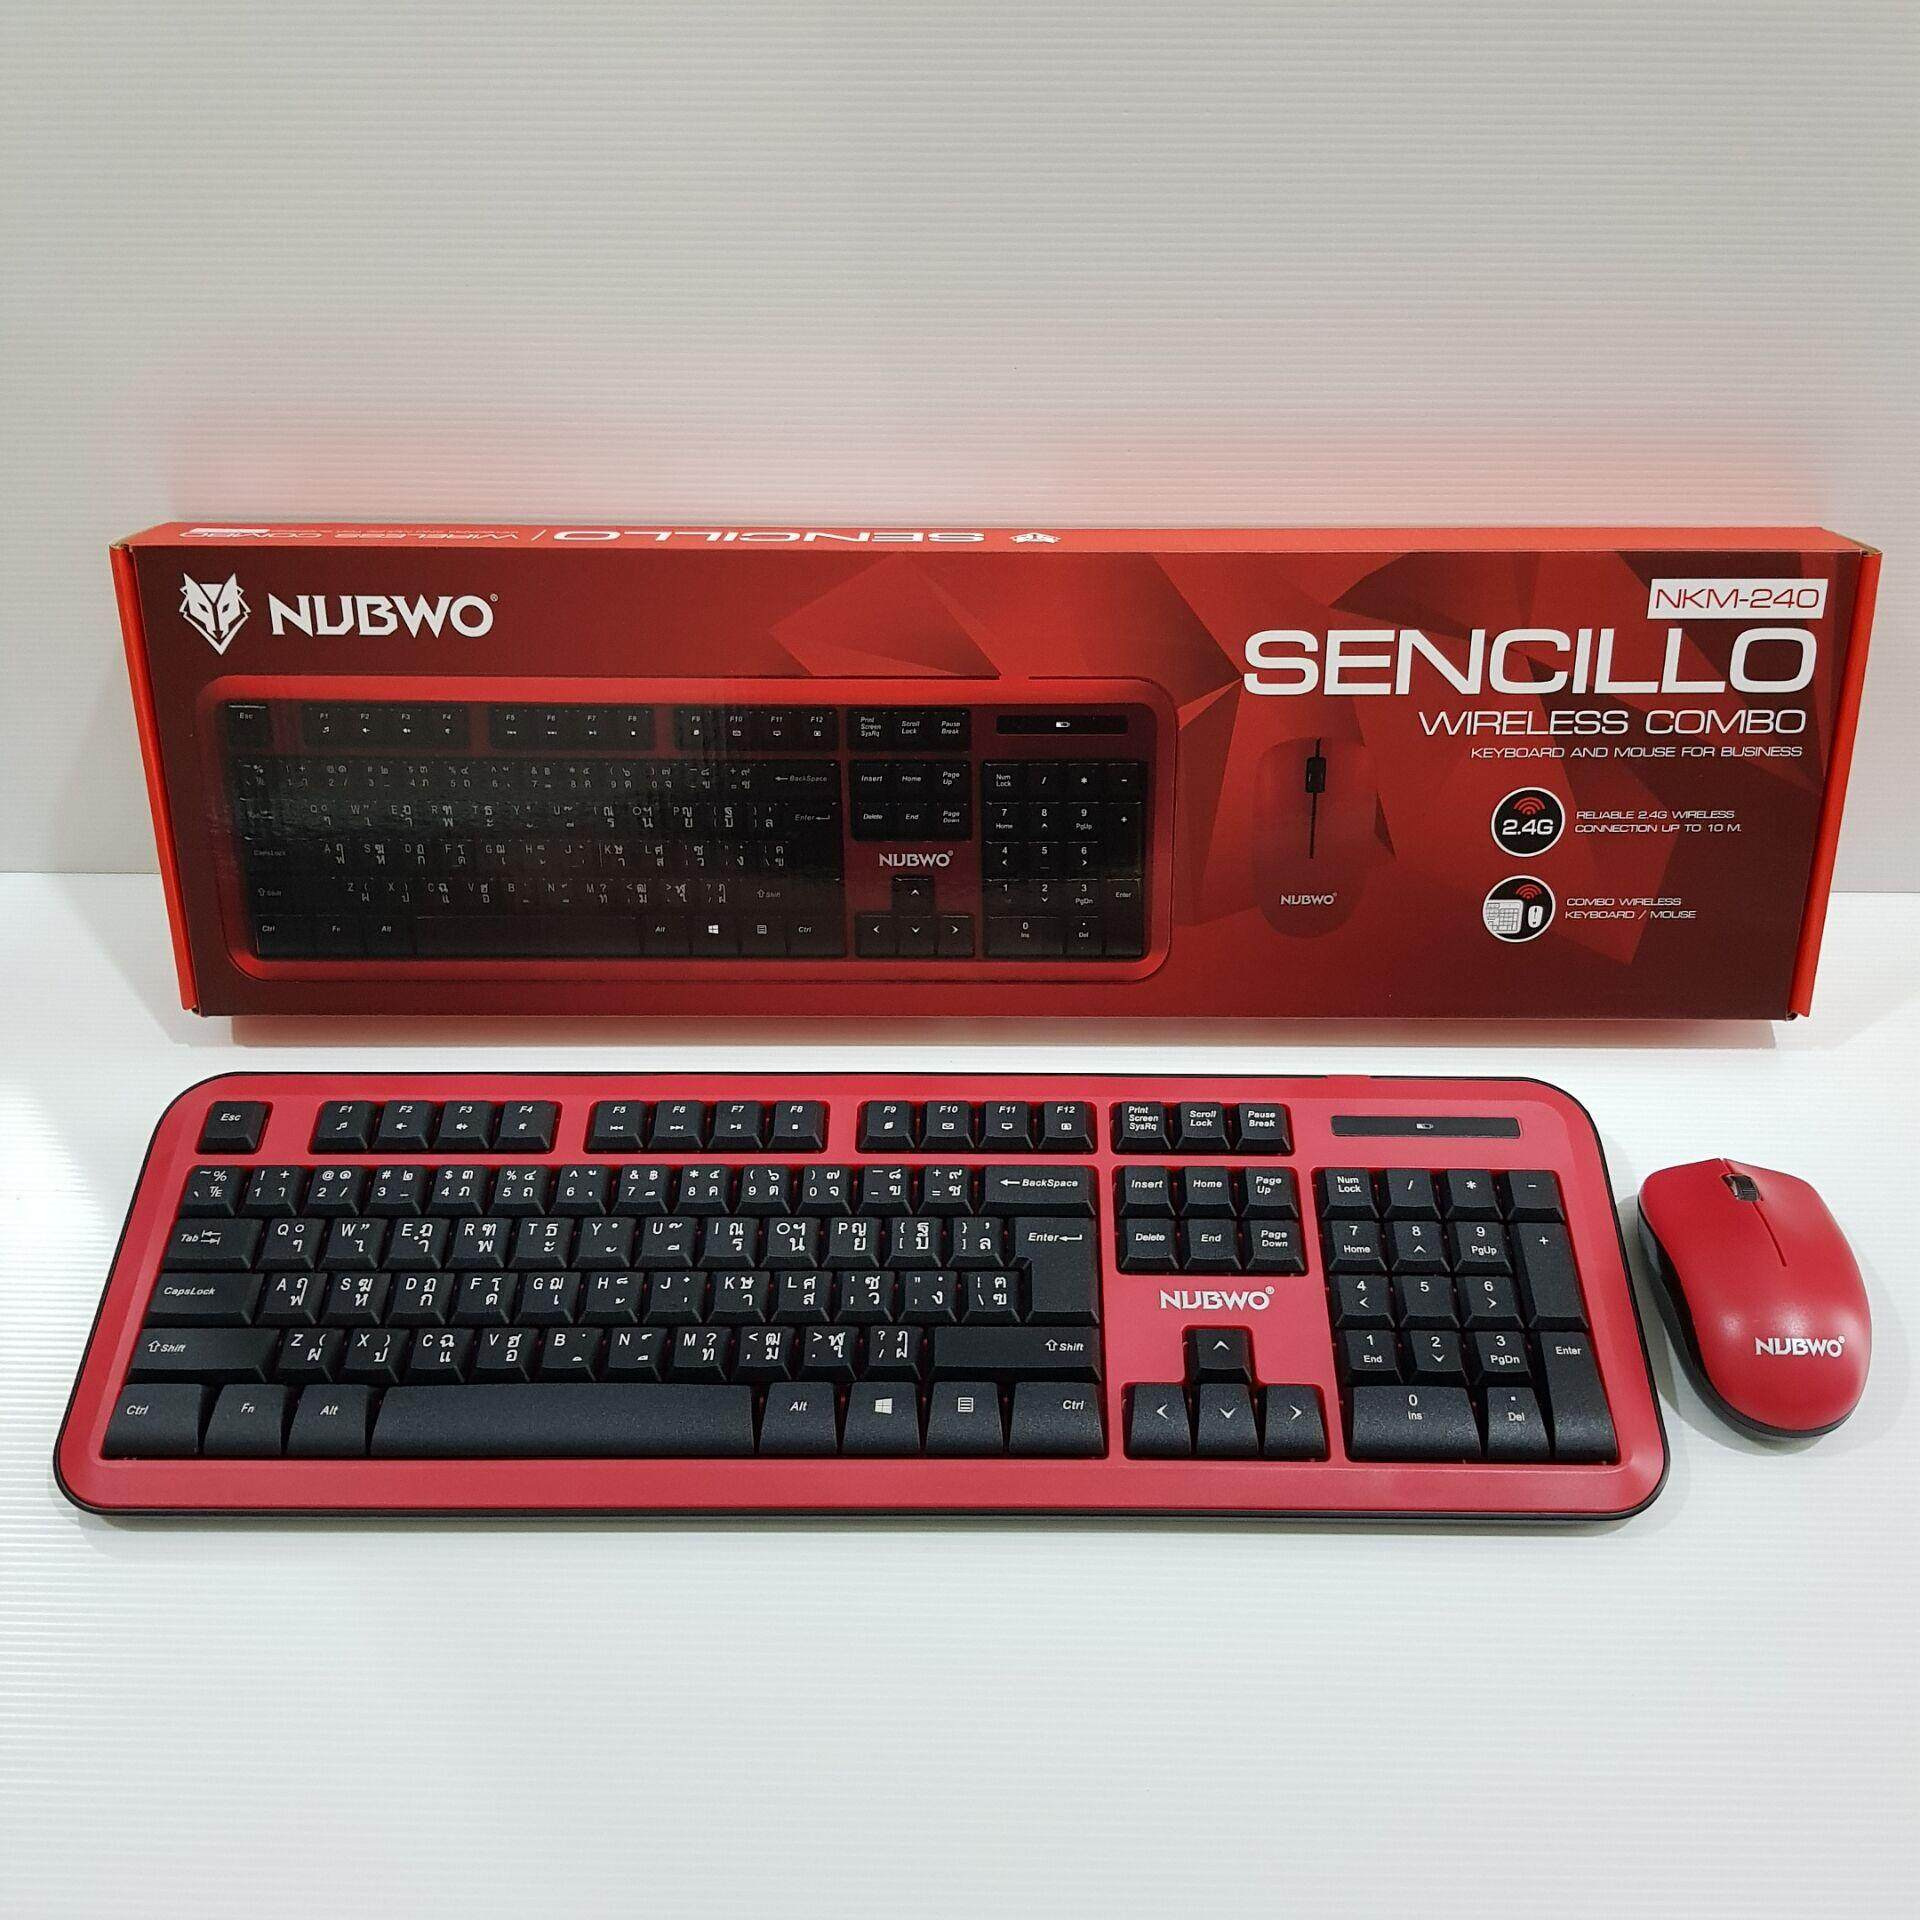 nubwo SENCILLO WIRELESS COMBO KEYBOARD/MOUSE FOR BUSINESS รหัส NKM-240